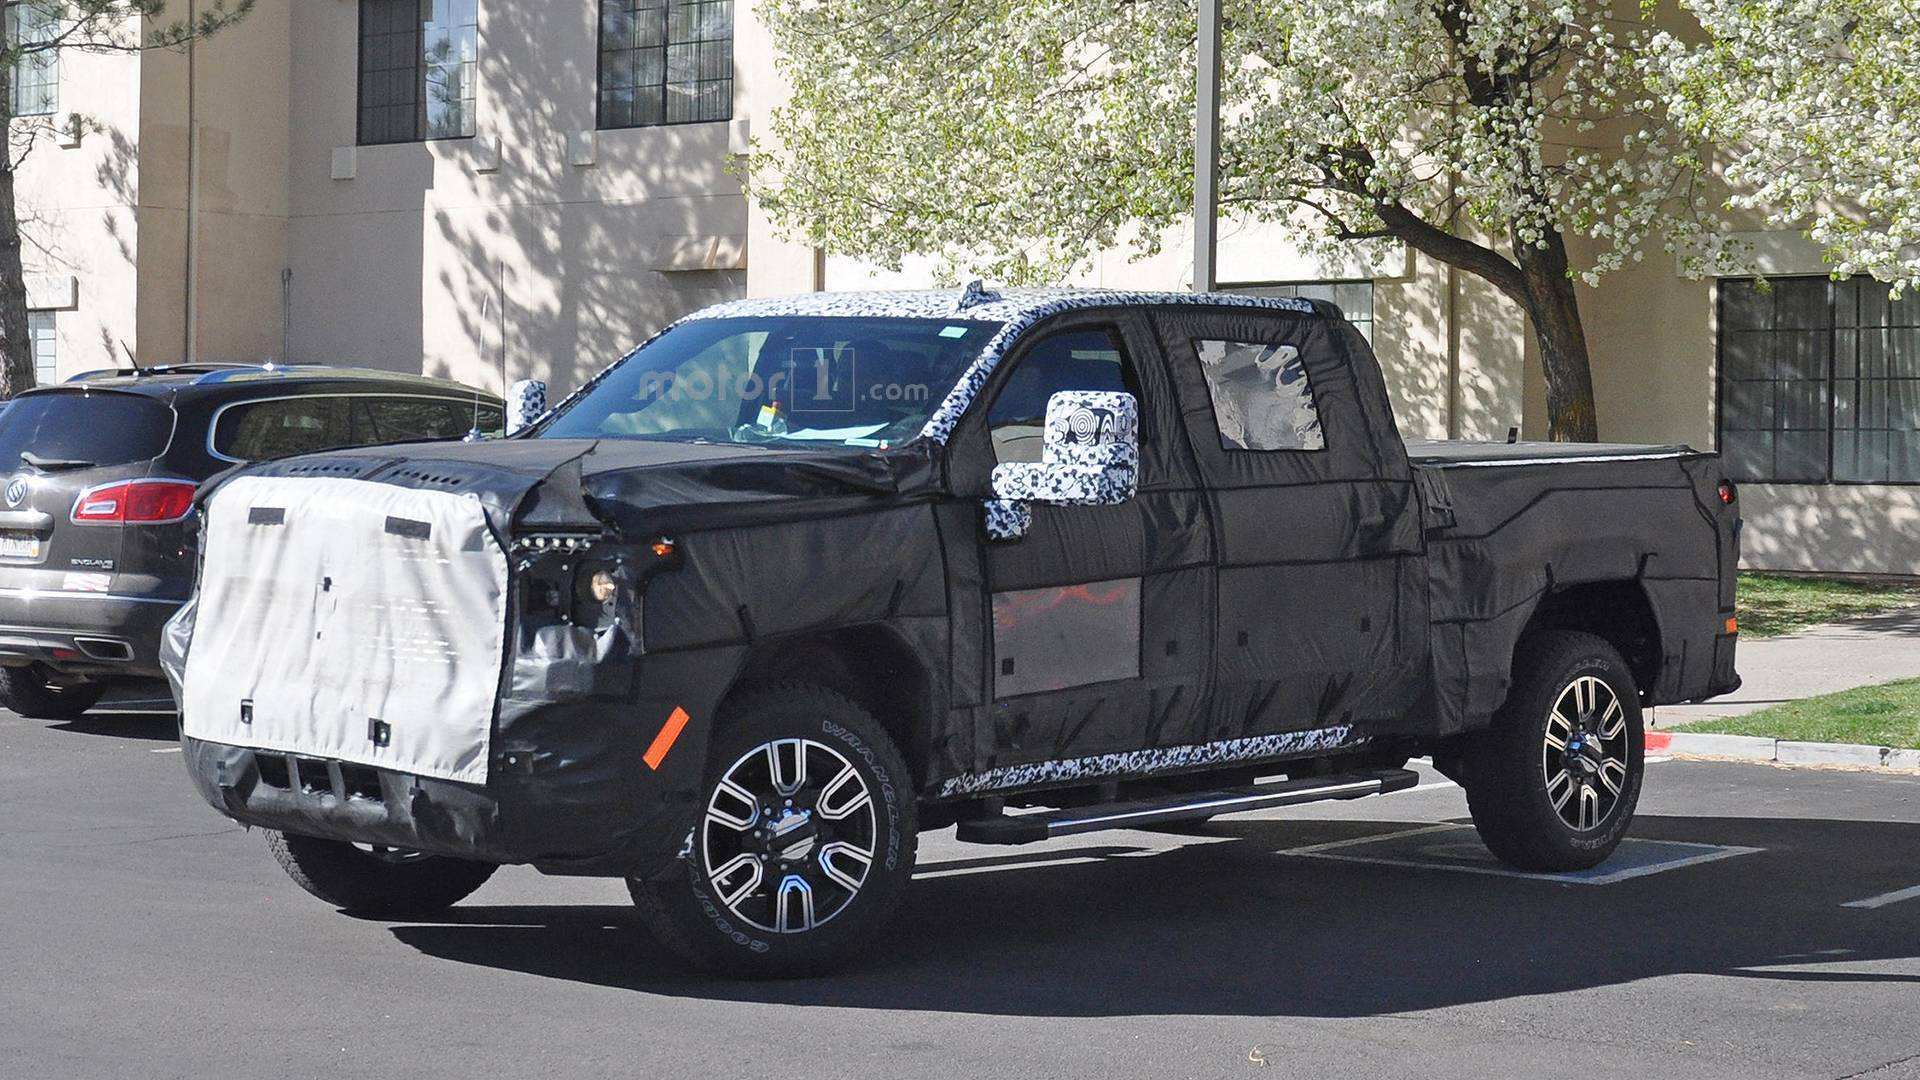 58 New When Is The 2020 Gmc 2500 Coming Out Speed Test for When Is The 2020 Gmc 2500 Coming Out